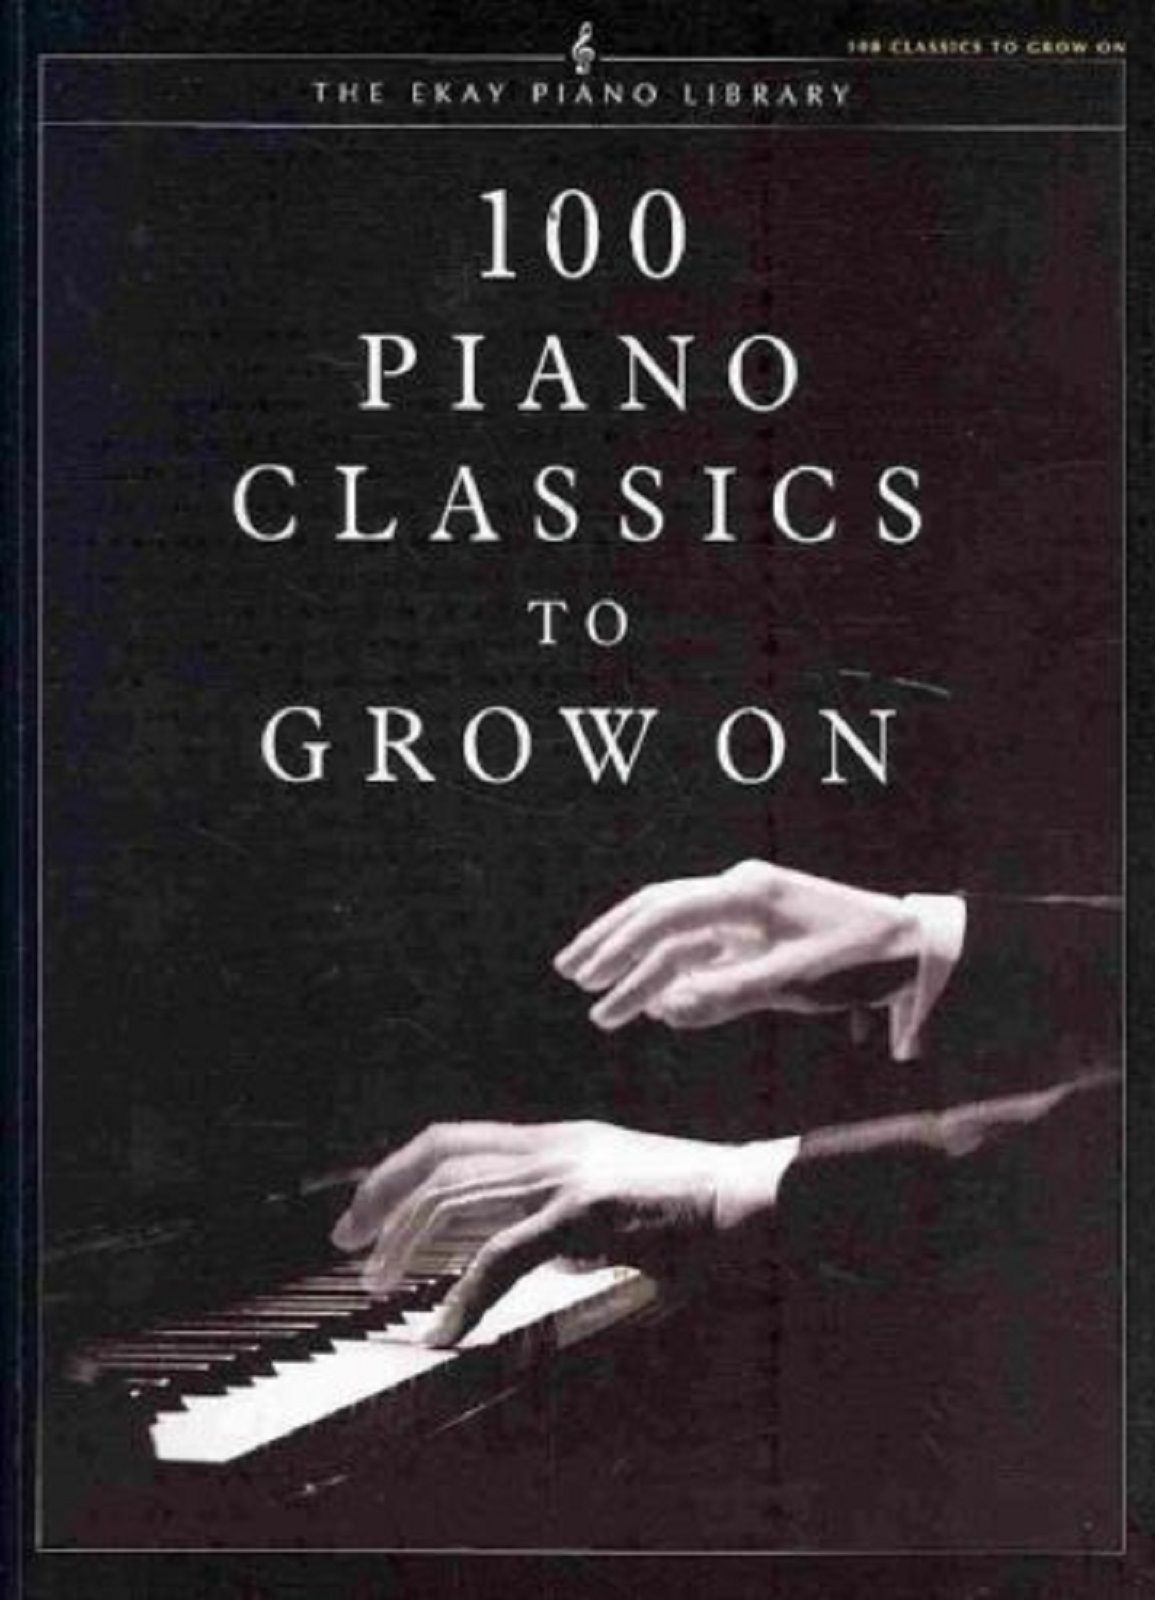 100 Piano Classics To Grow On Solos Baroque Classical Romantic Book S169